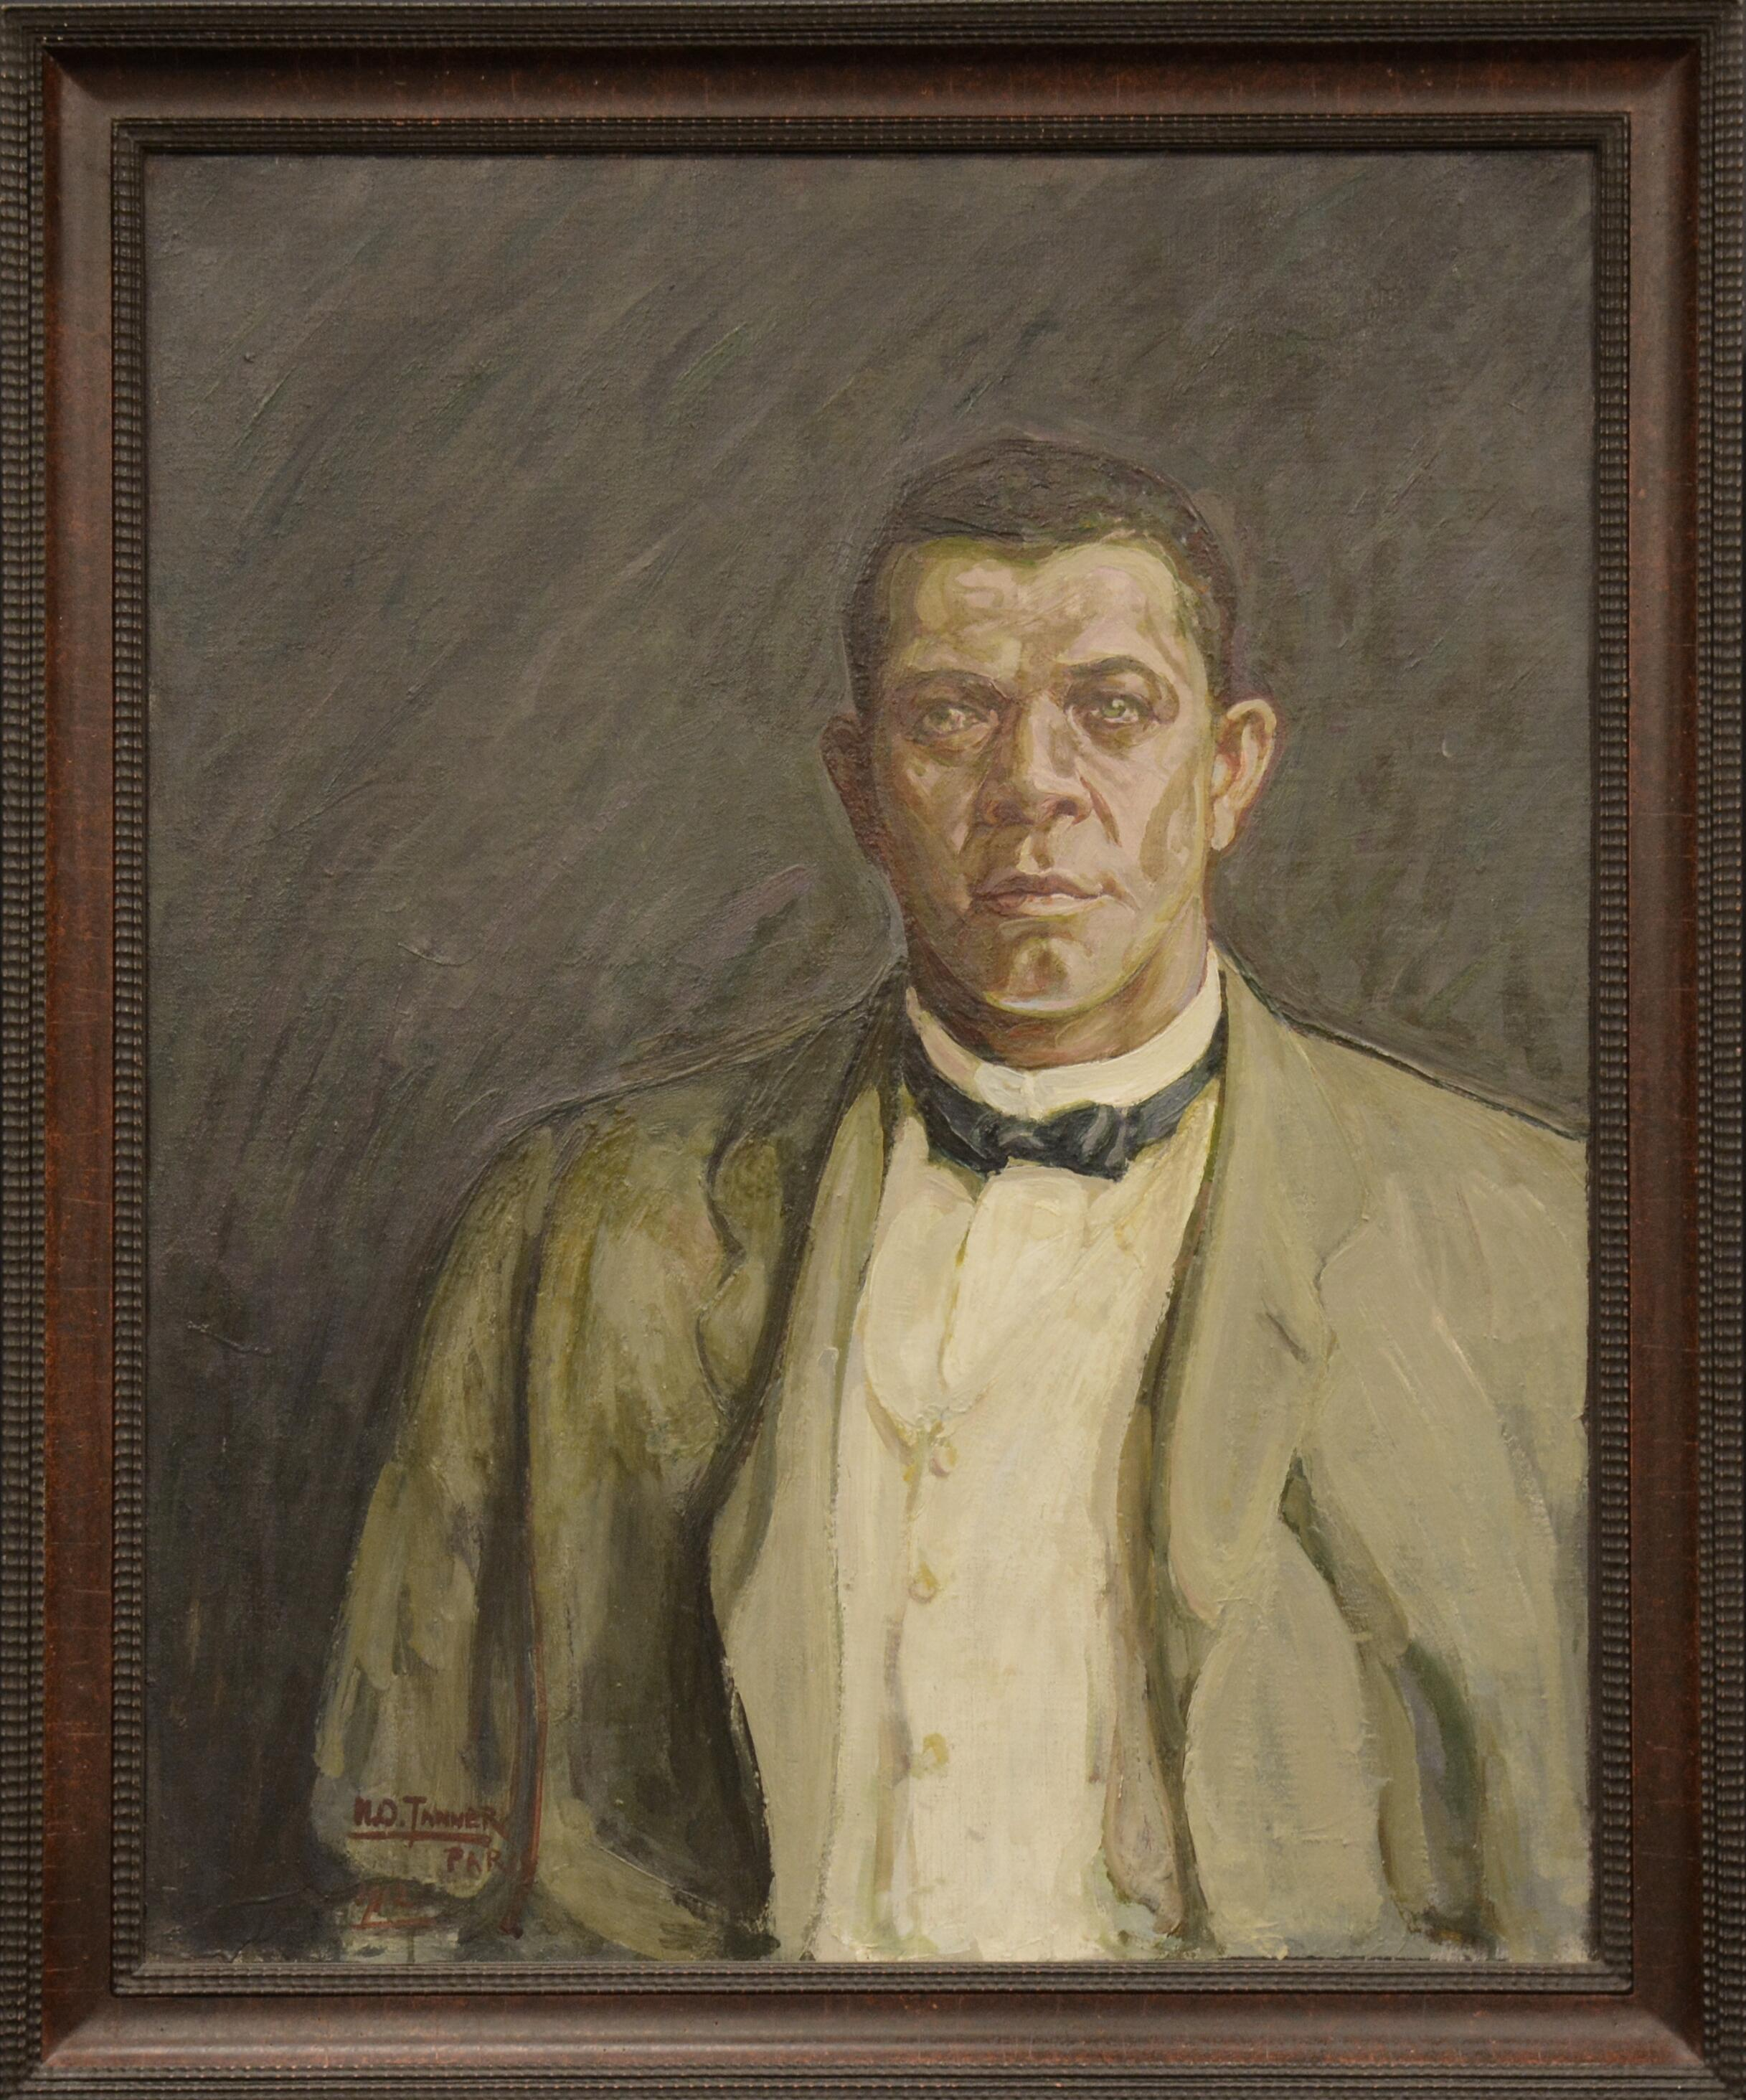 « Portrait of Booker T. Washington » (detail), 1917. Oeuvre de Henry Ossawa Tanner (1859-1937), exposée dans « The Color Line » au musée du quai Branly.